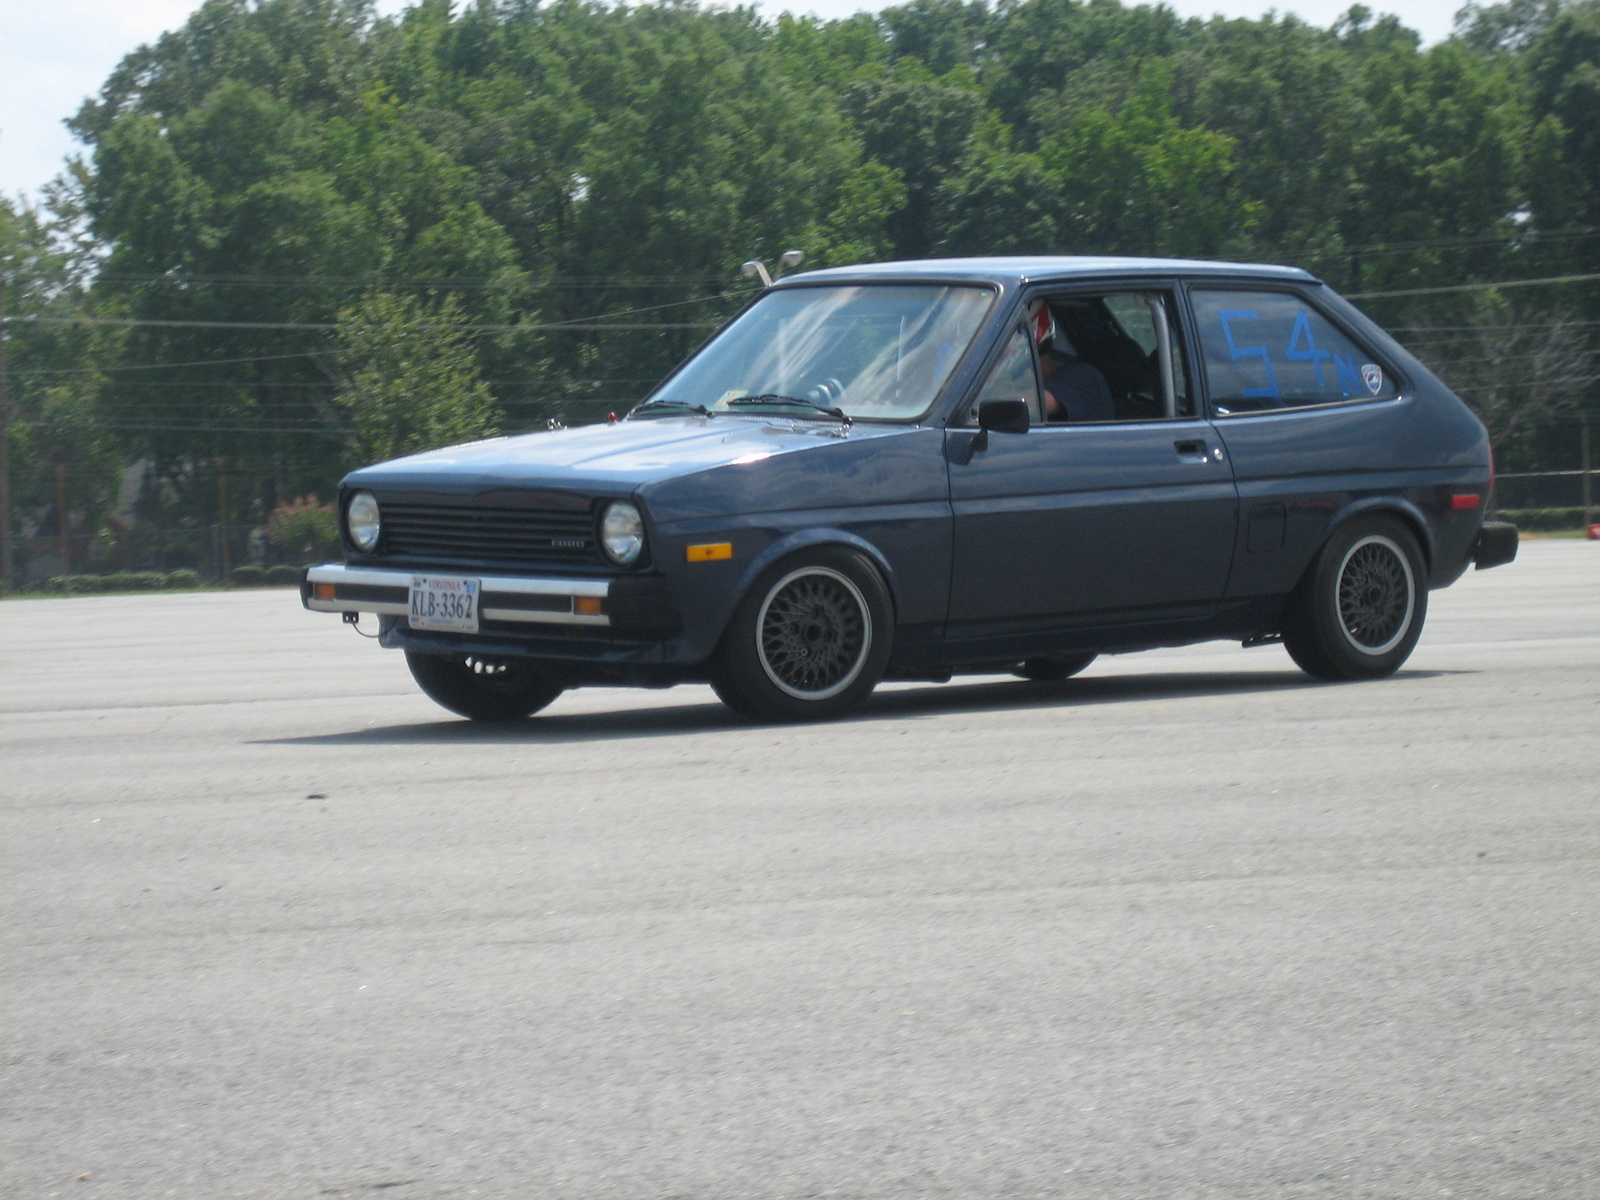 1980 ford fiesta pictures cargurus 1980 ford fiesta motor for sale 1980 ford fiesta mk1 body parts